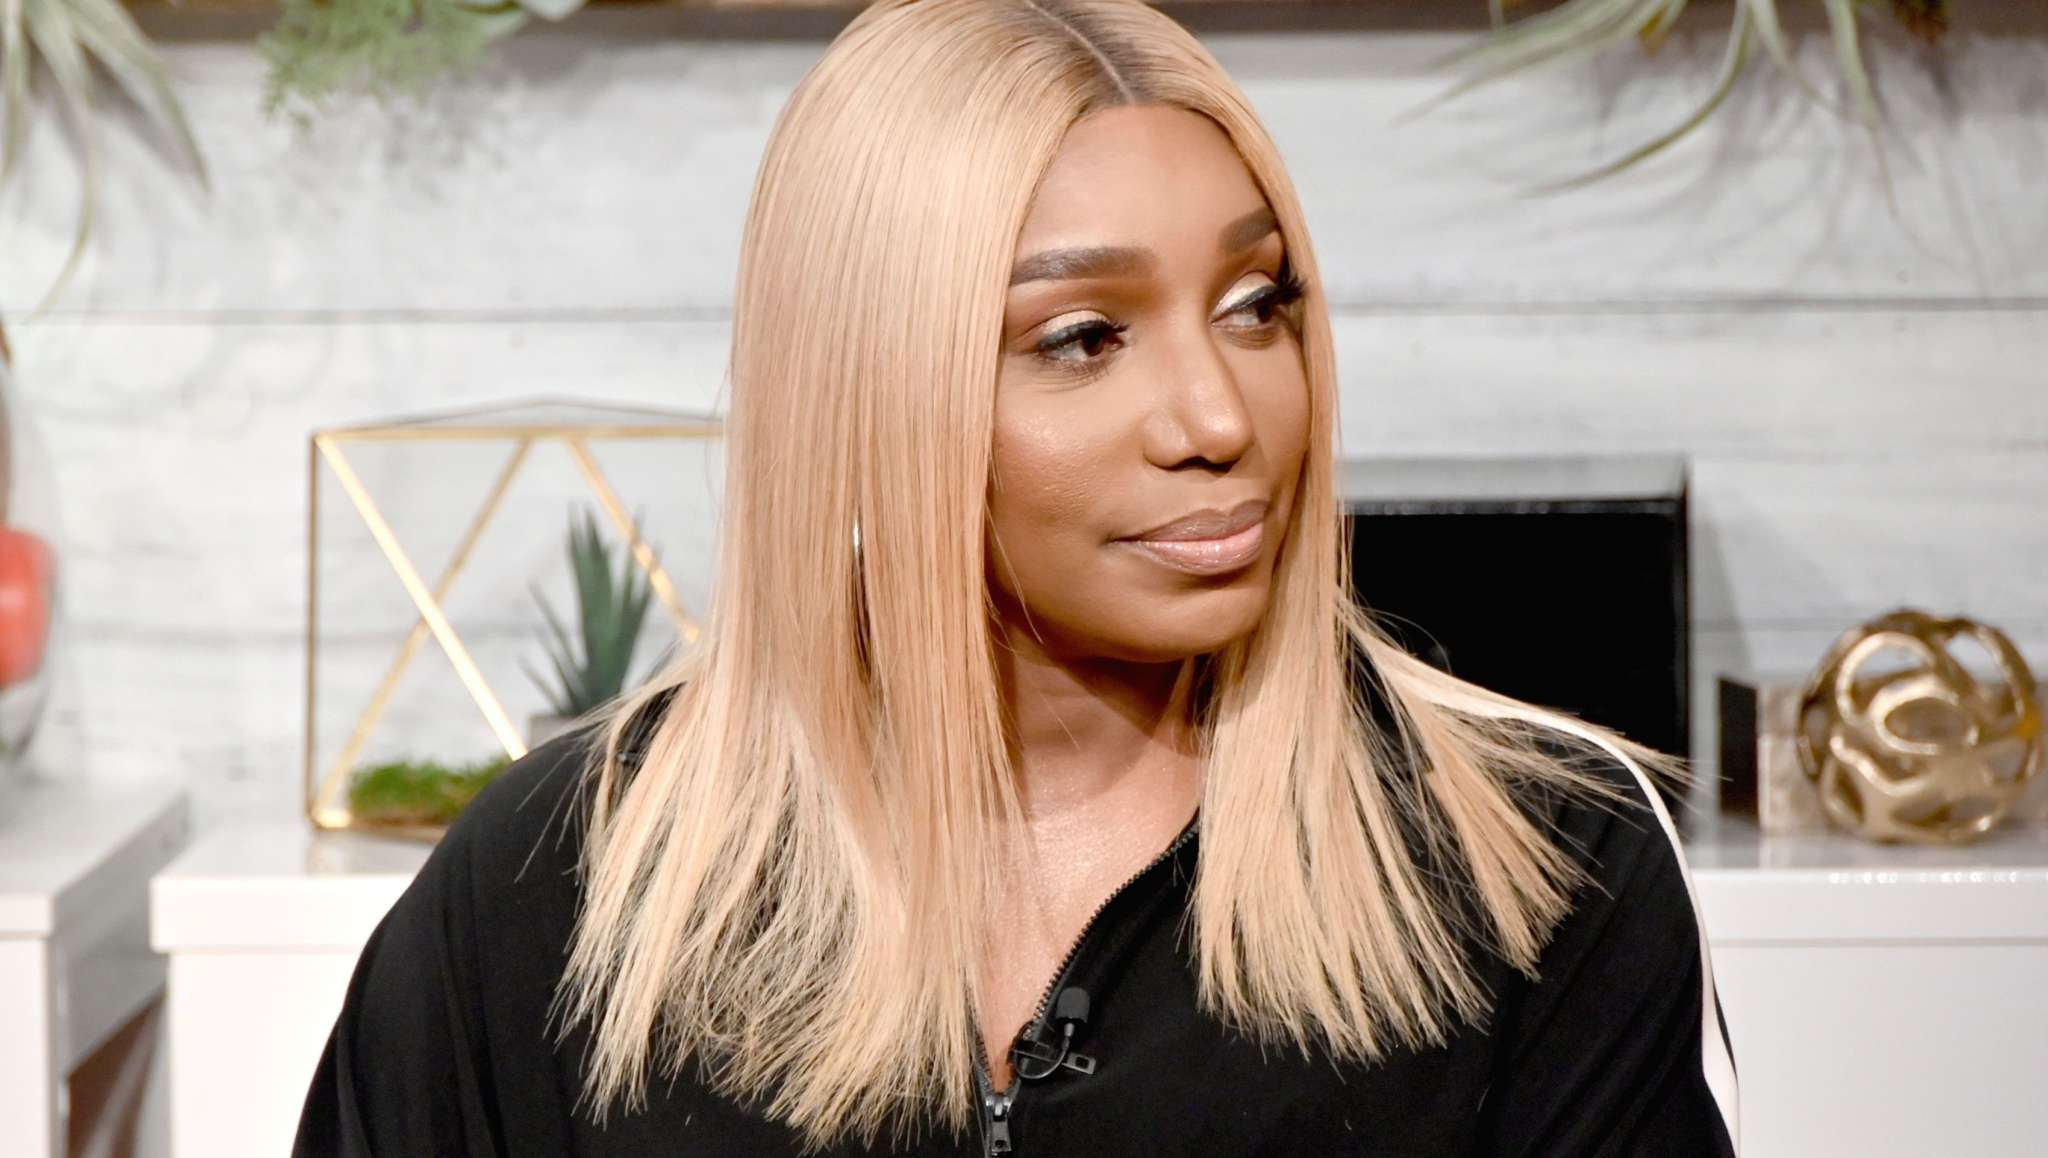 nene-leakes-heres-the-real-reason-why-she-deleted-her-instagram